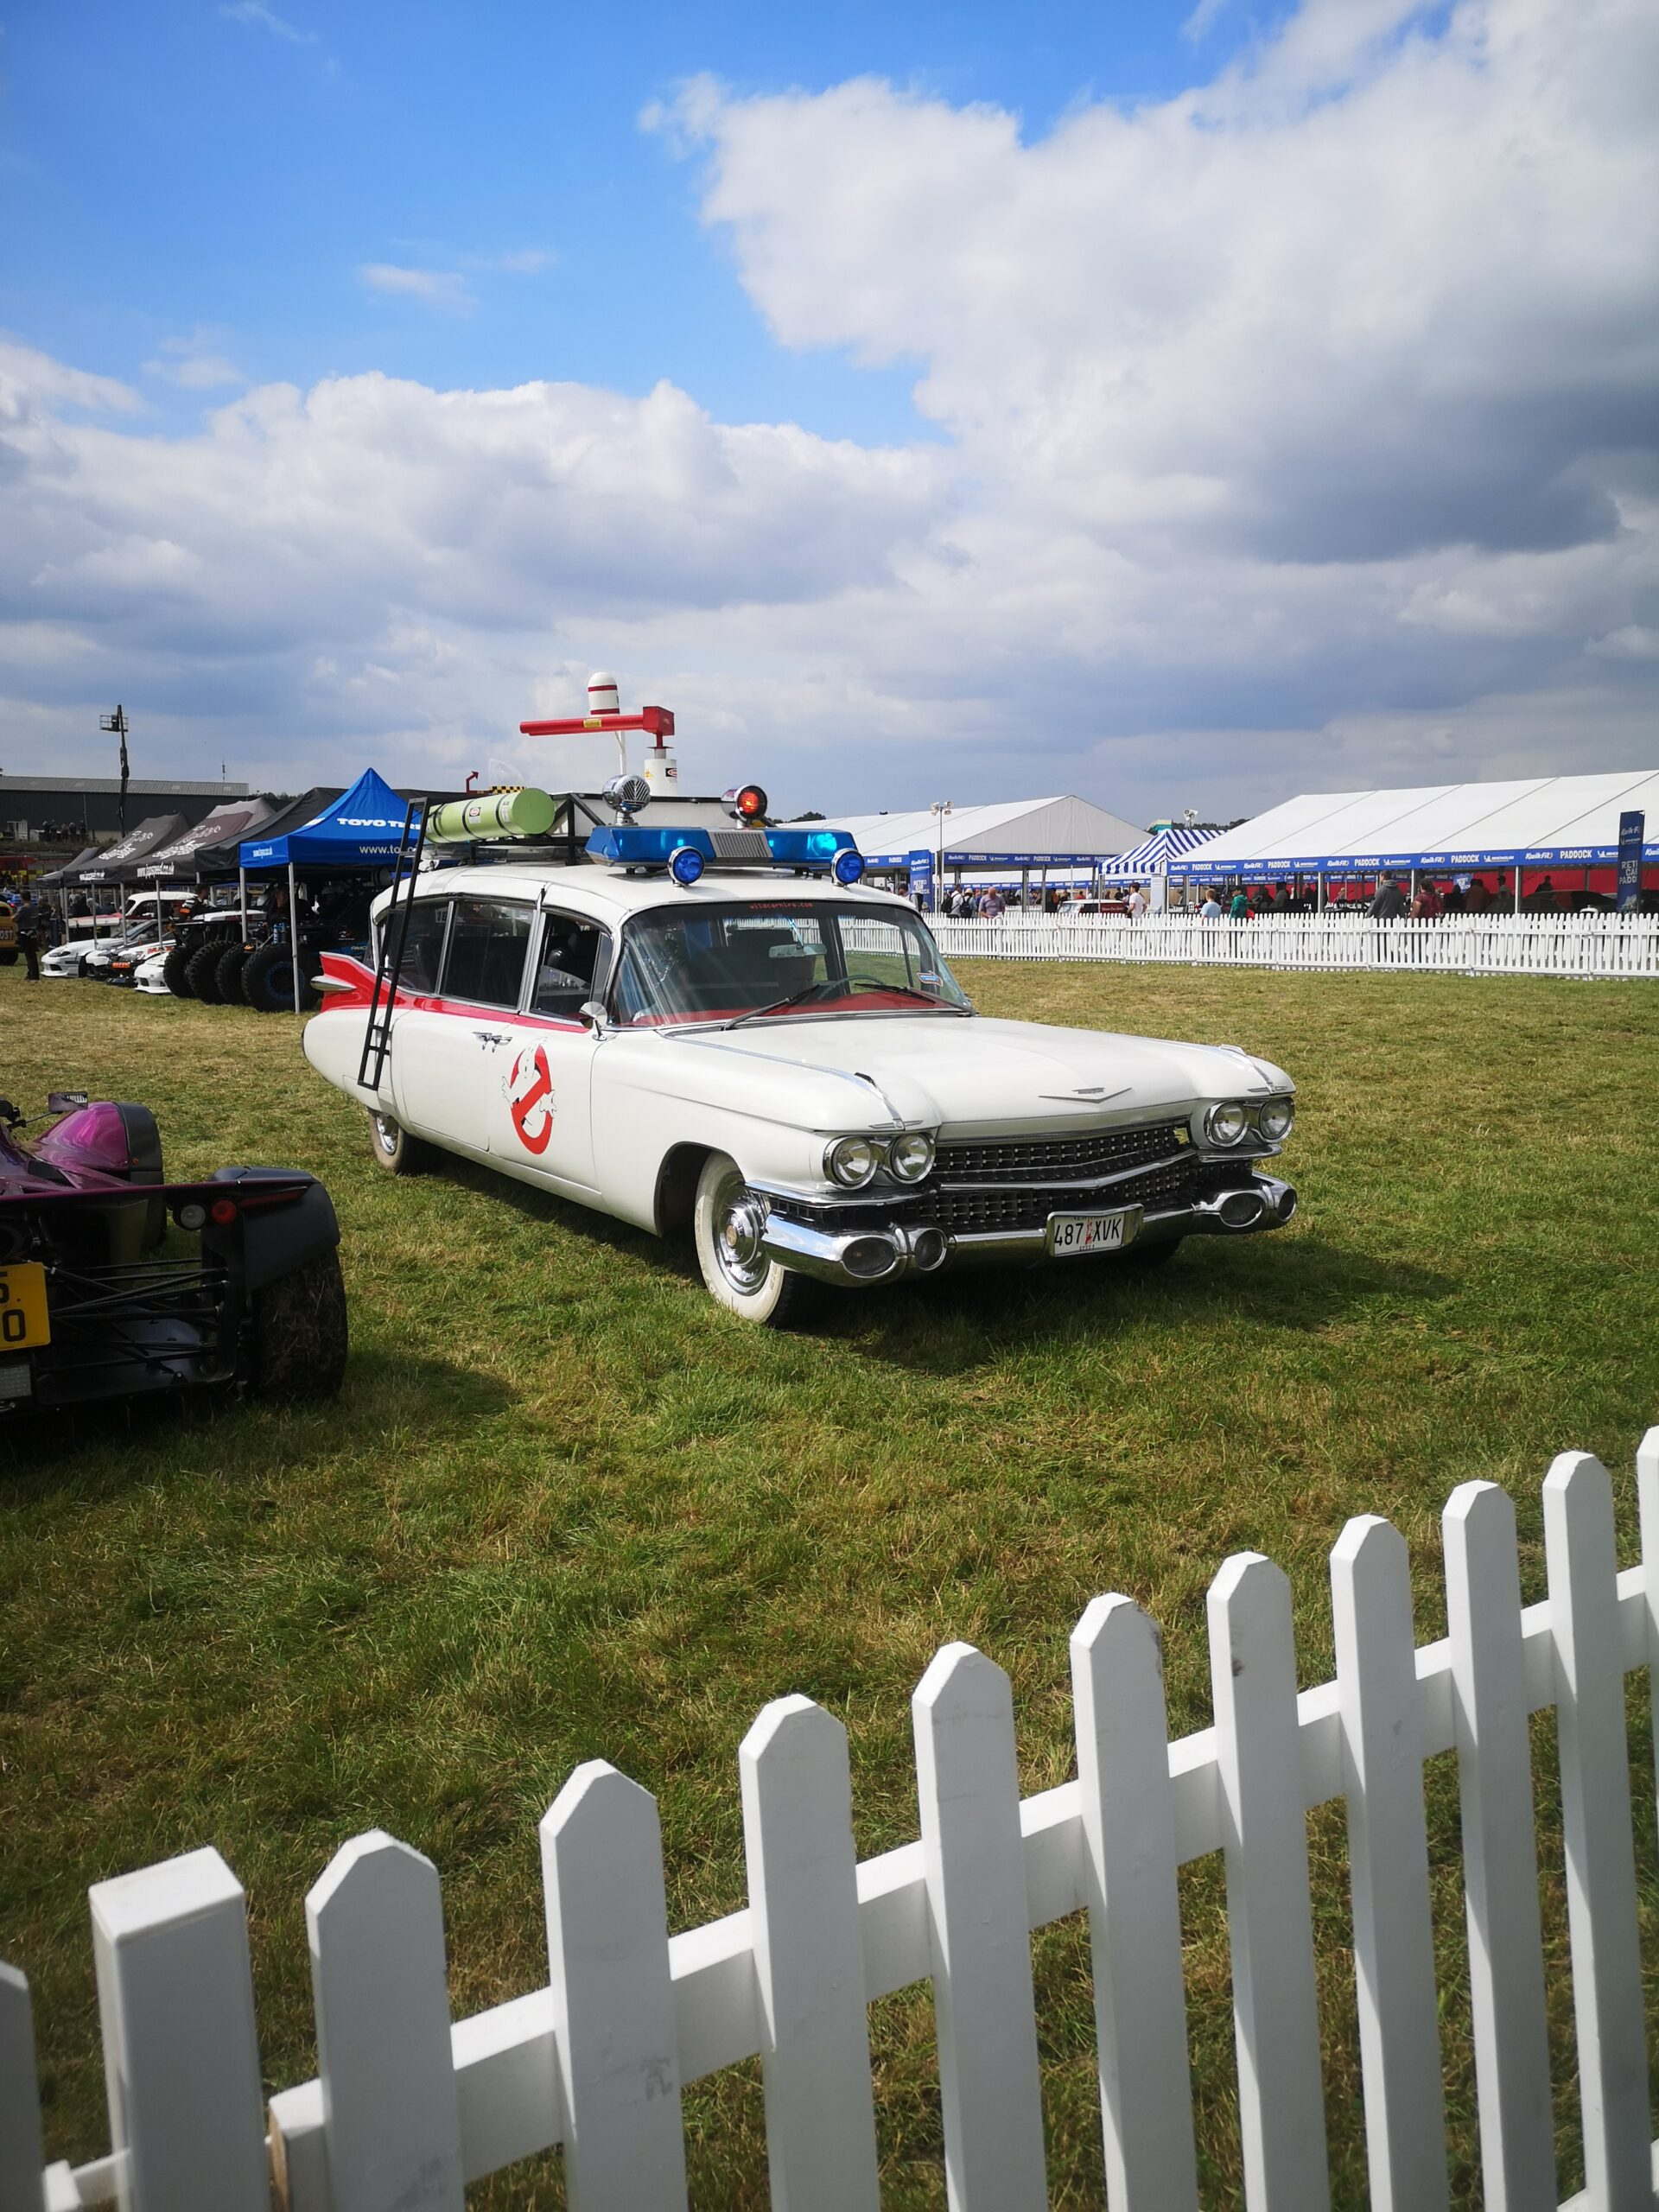 August 2021, Monthly Highlights, Summer 2021, the Frenchie Mummy, CarFest South